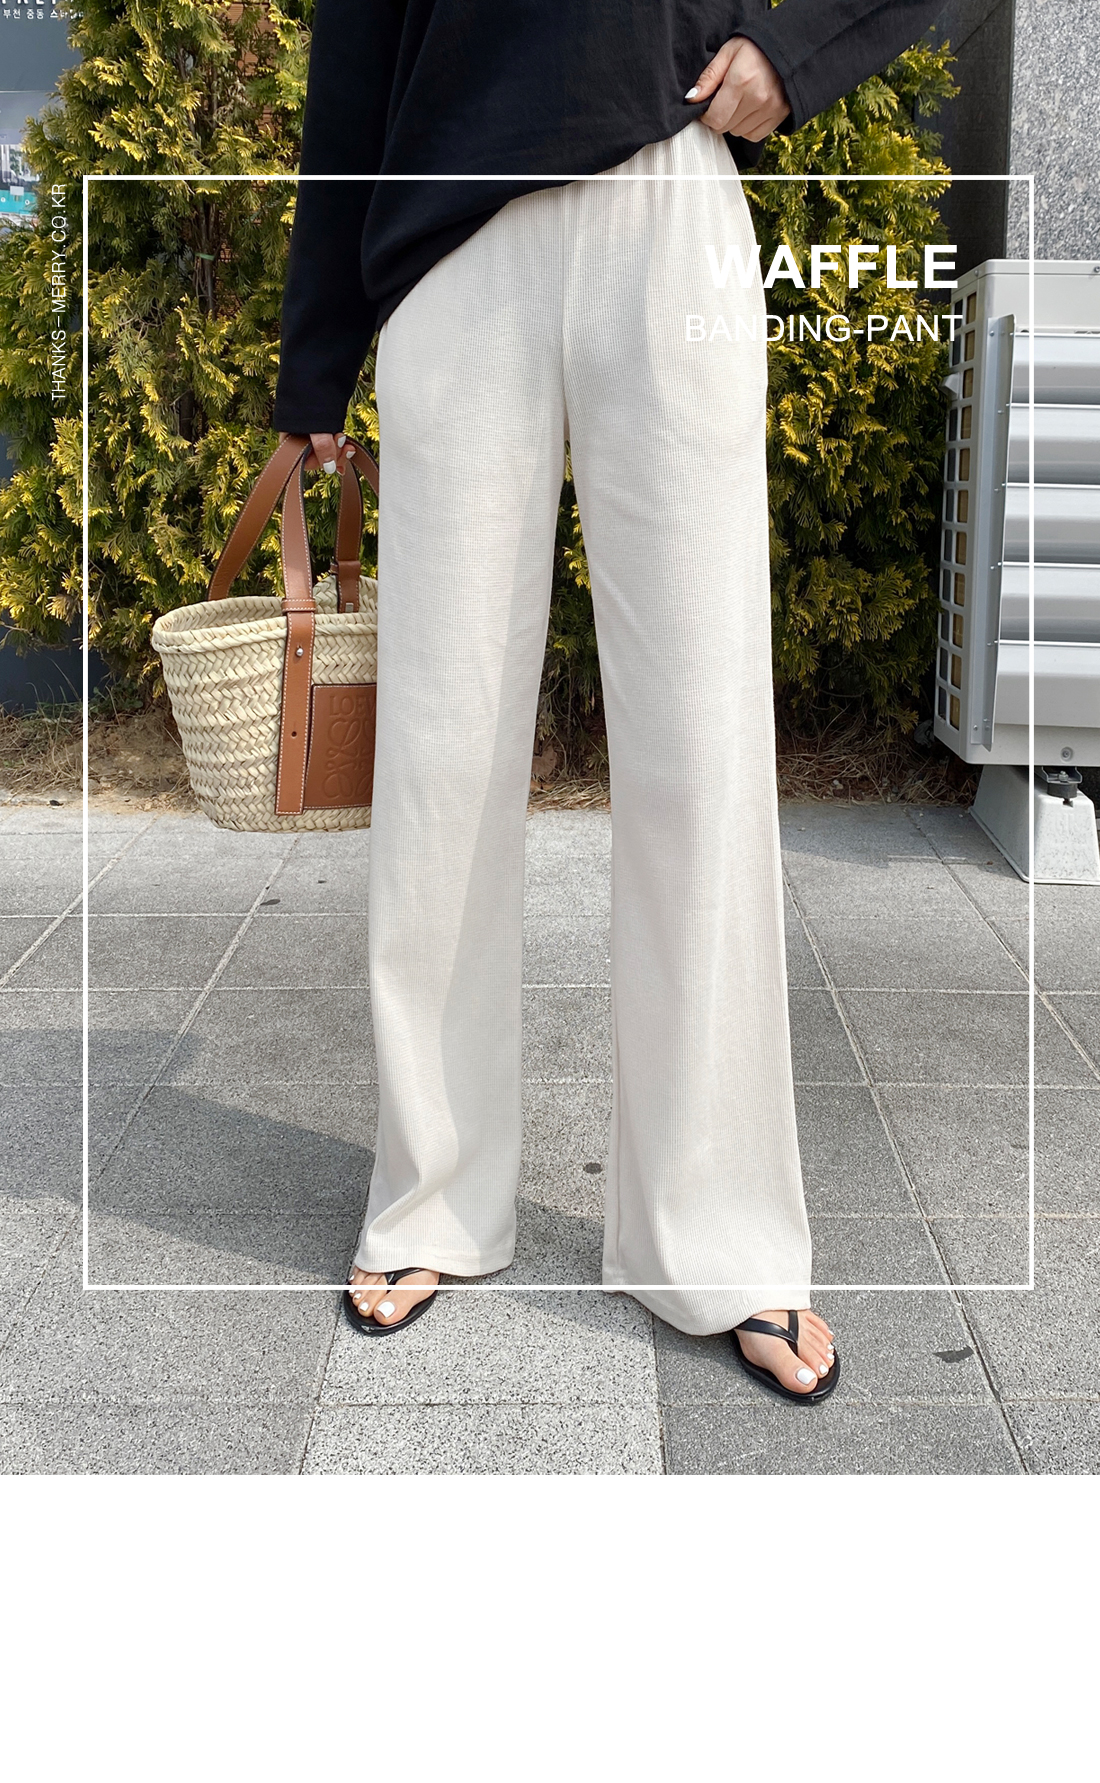 Waffle weave through the Ribbed band pants